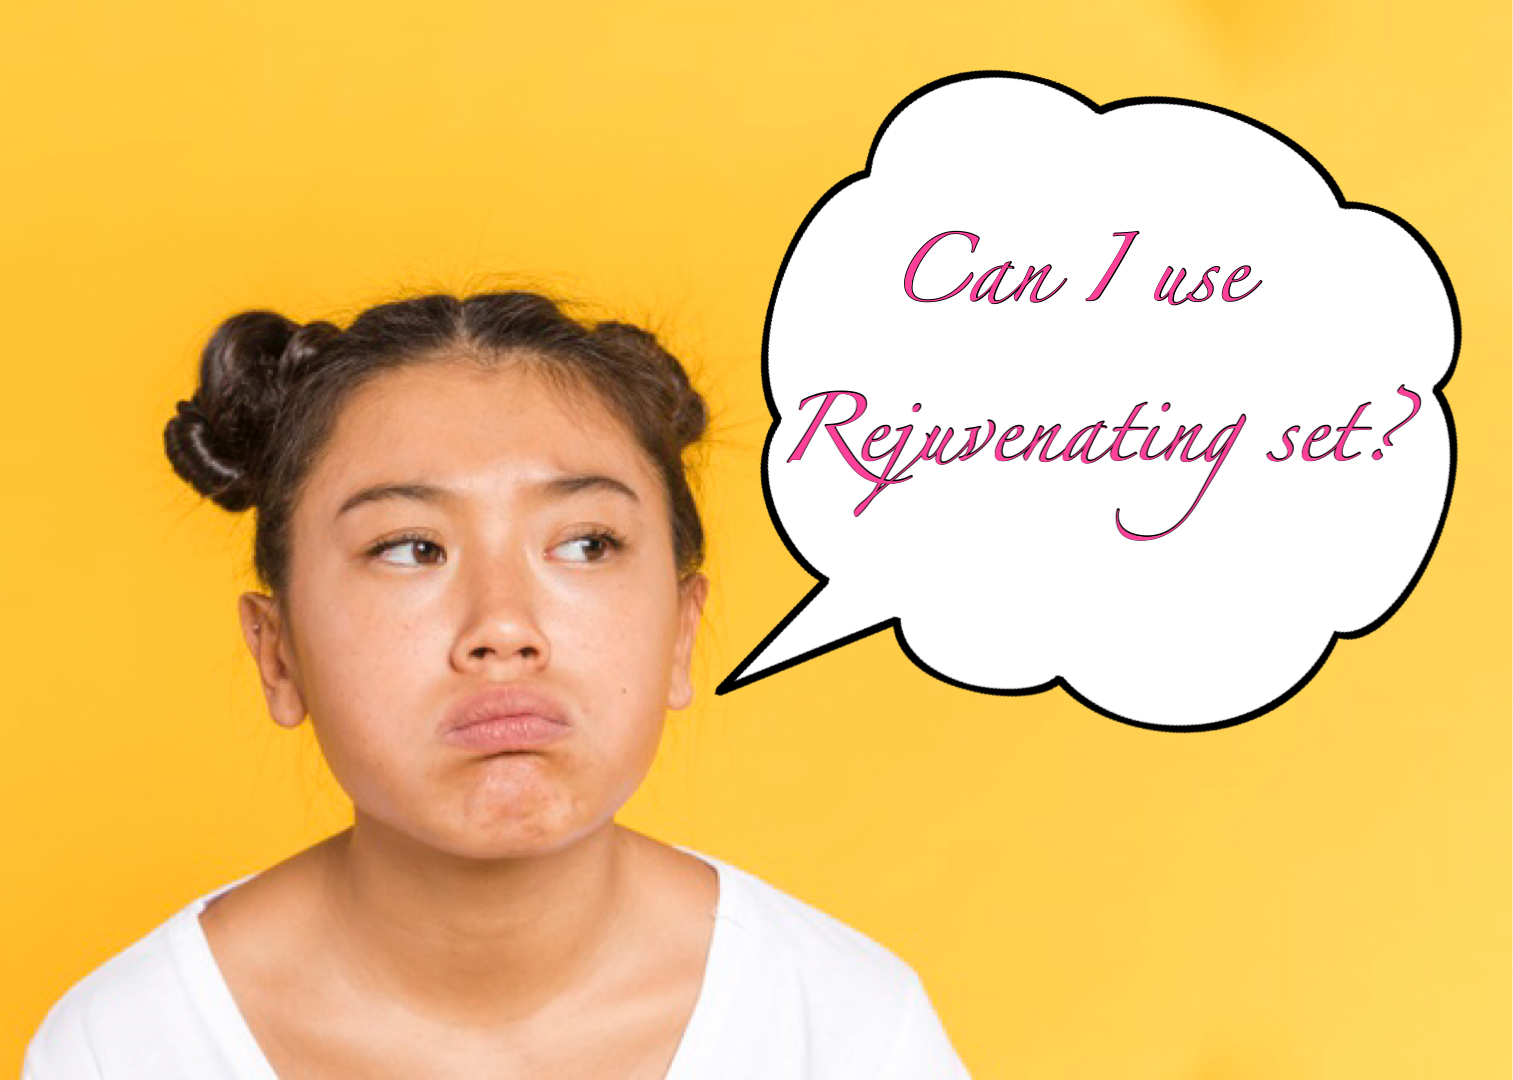 Is Rejuvenating Set Safe For 13 Years Old?